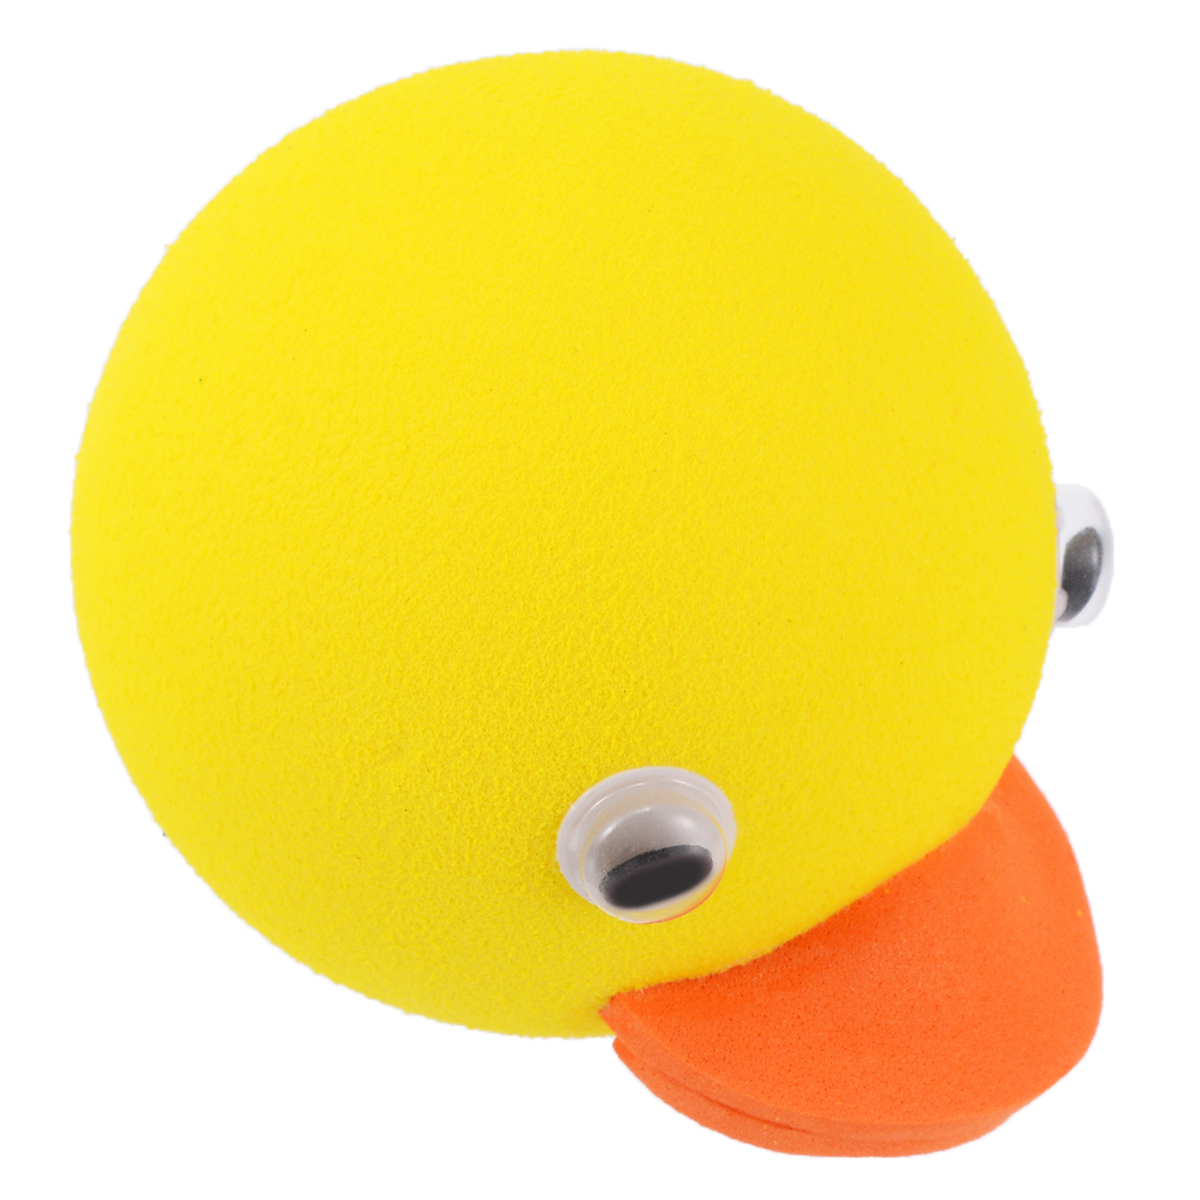 1pcs Lovely Cute Yellow Duck Auto Car Antenna Pen Topper Aerial Ball Decoration Gift Toy Roof Decorative Accessories